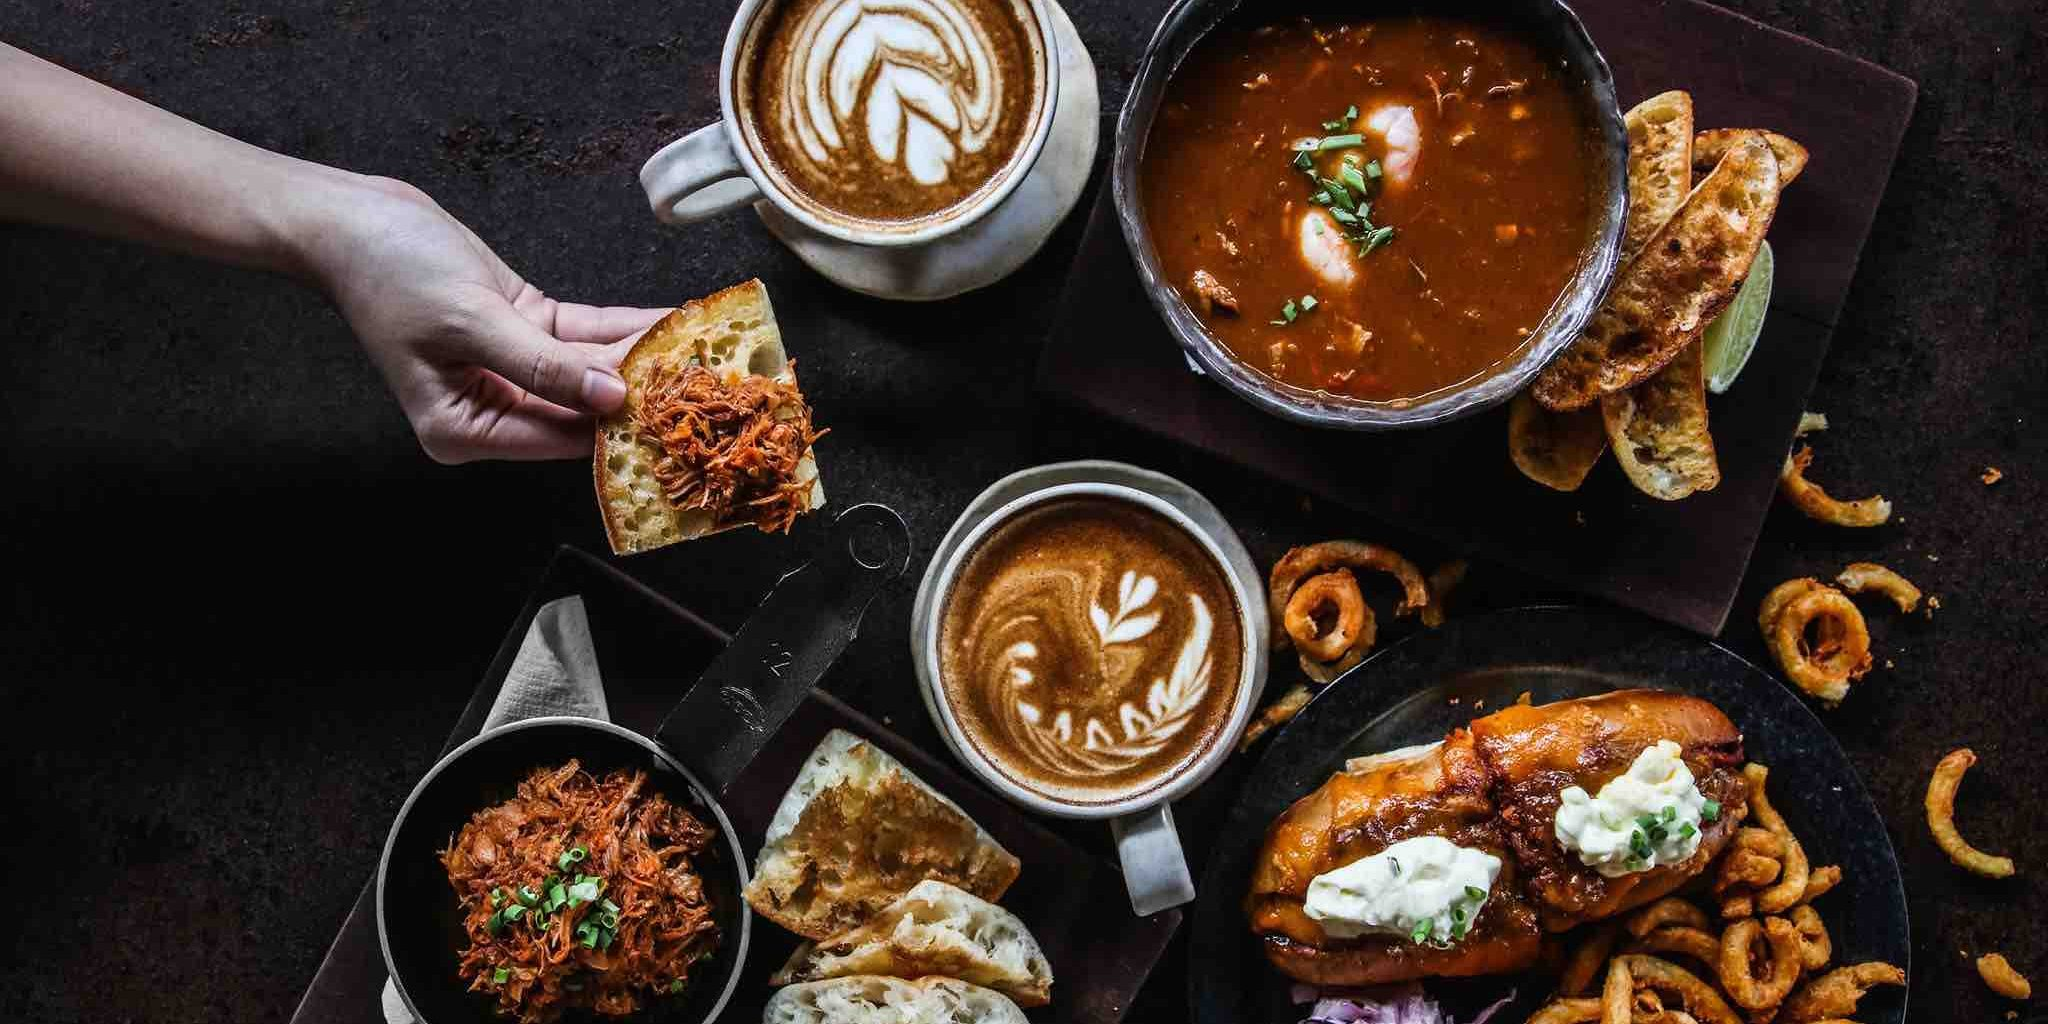 Alter Ego Singapore is Giving Away 50 FREE Lunches Contest ends 11 Jun 2017